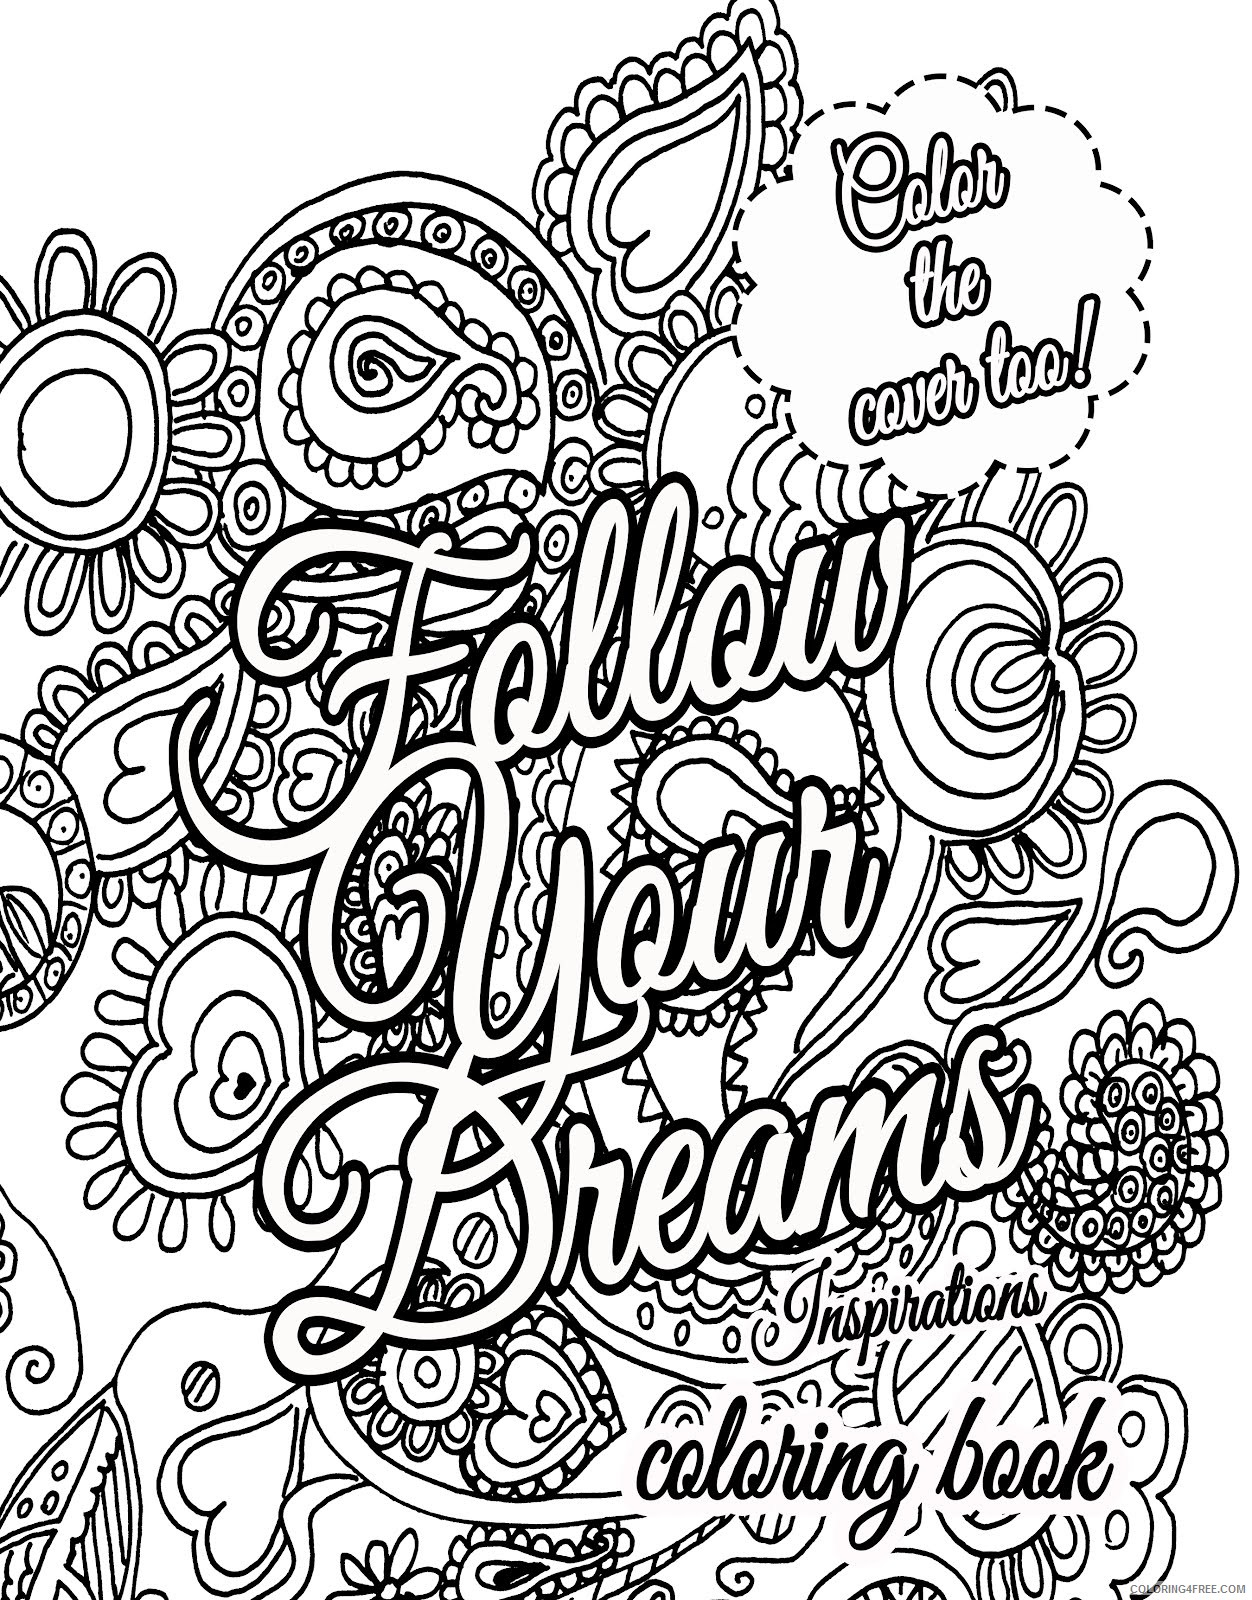 quote coloring pages about dream for adults Coloring4free